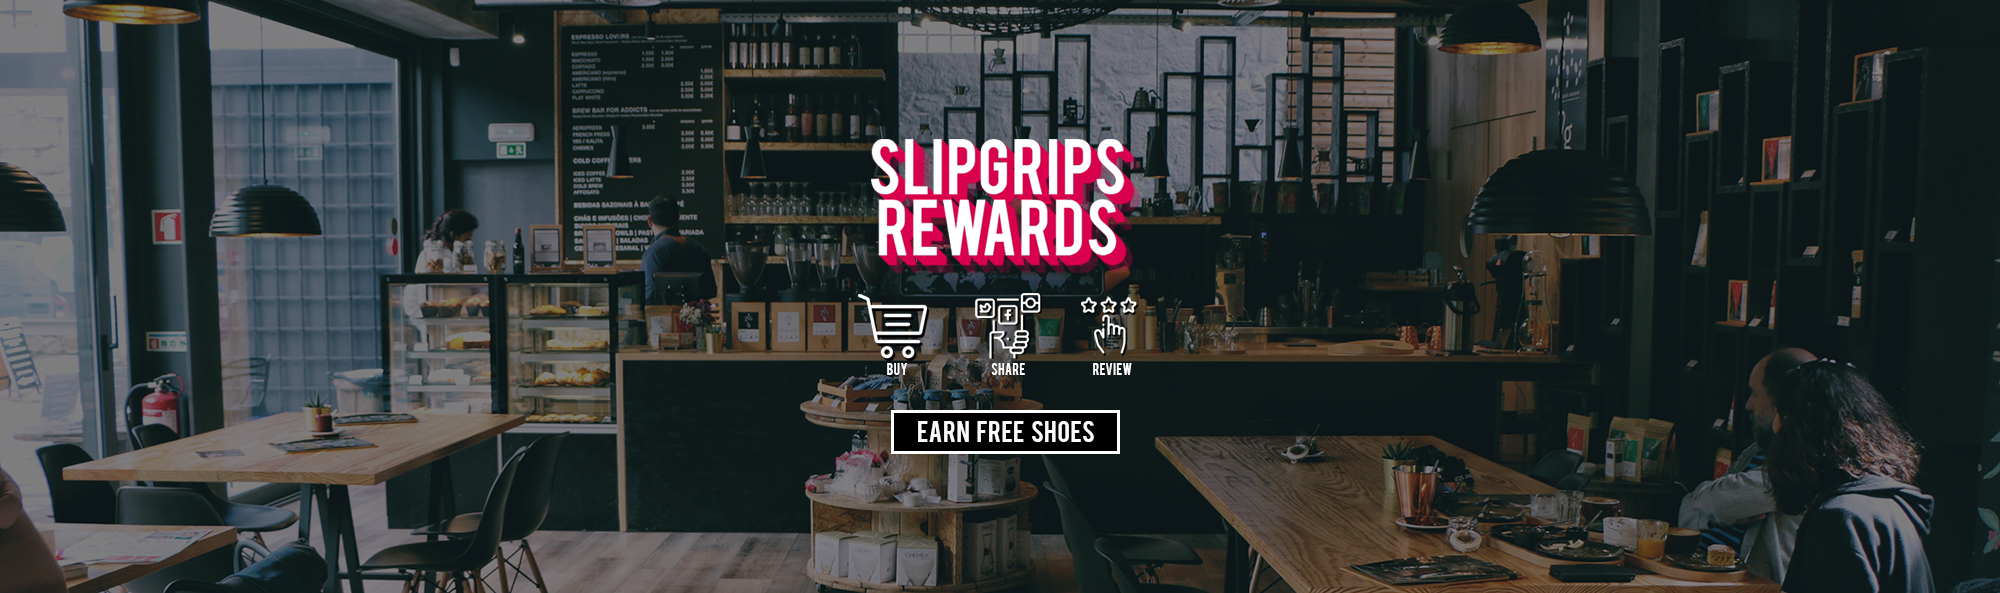 Earn free shoes by shopping, sharing, and more!